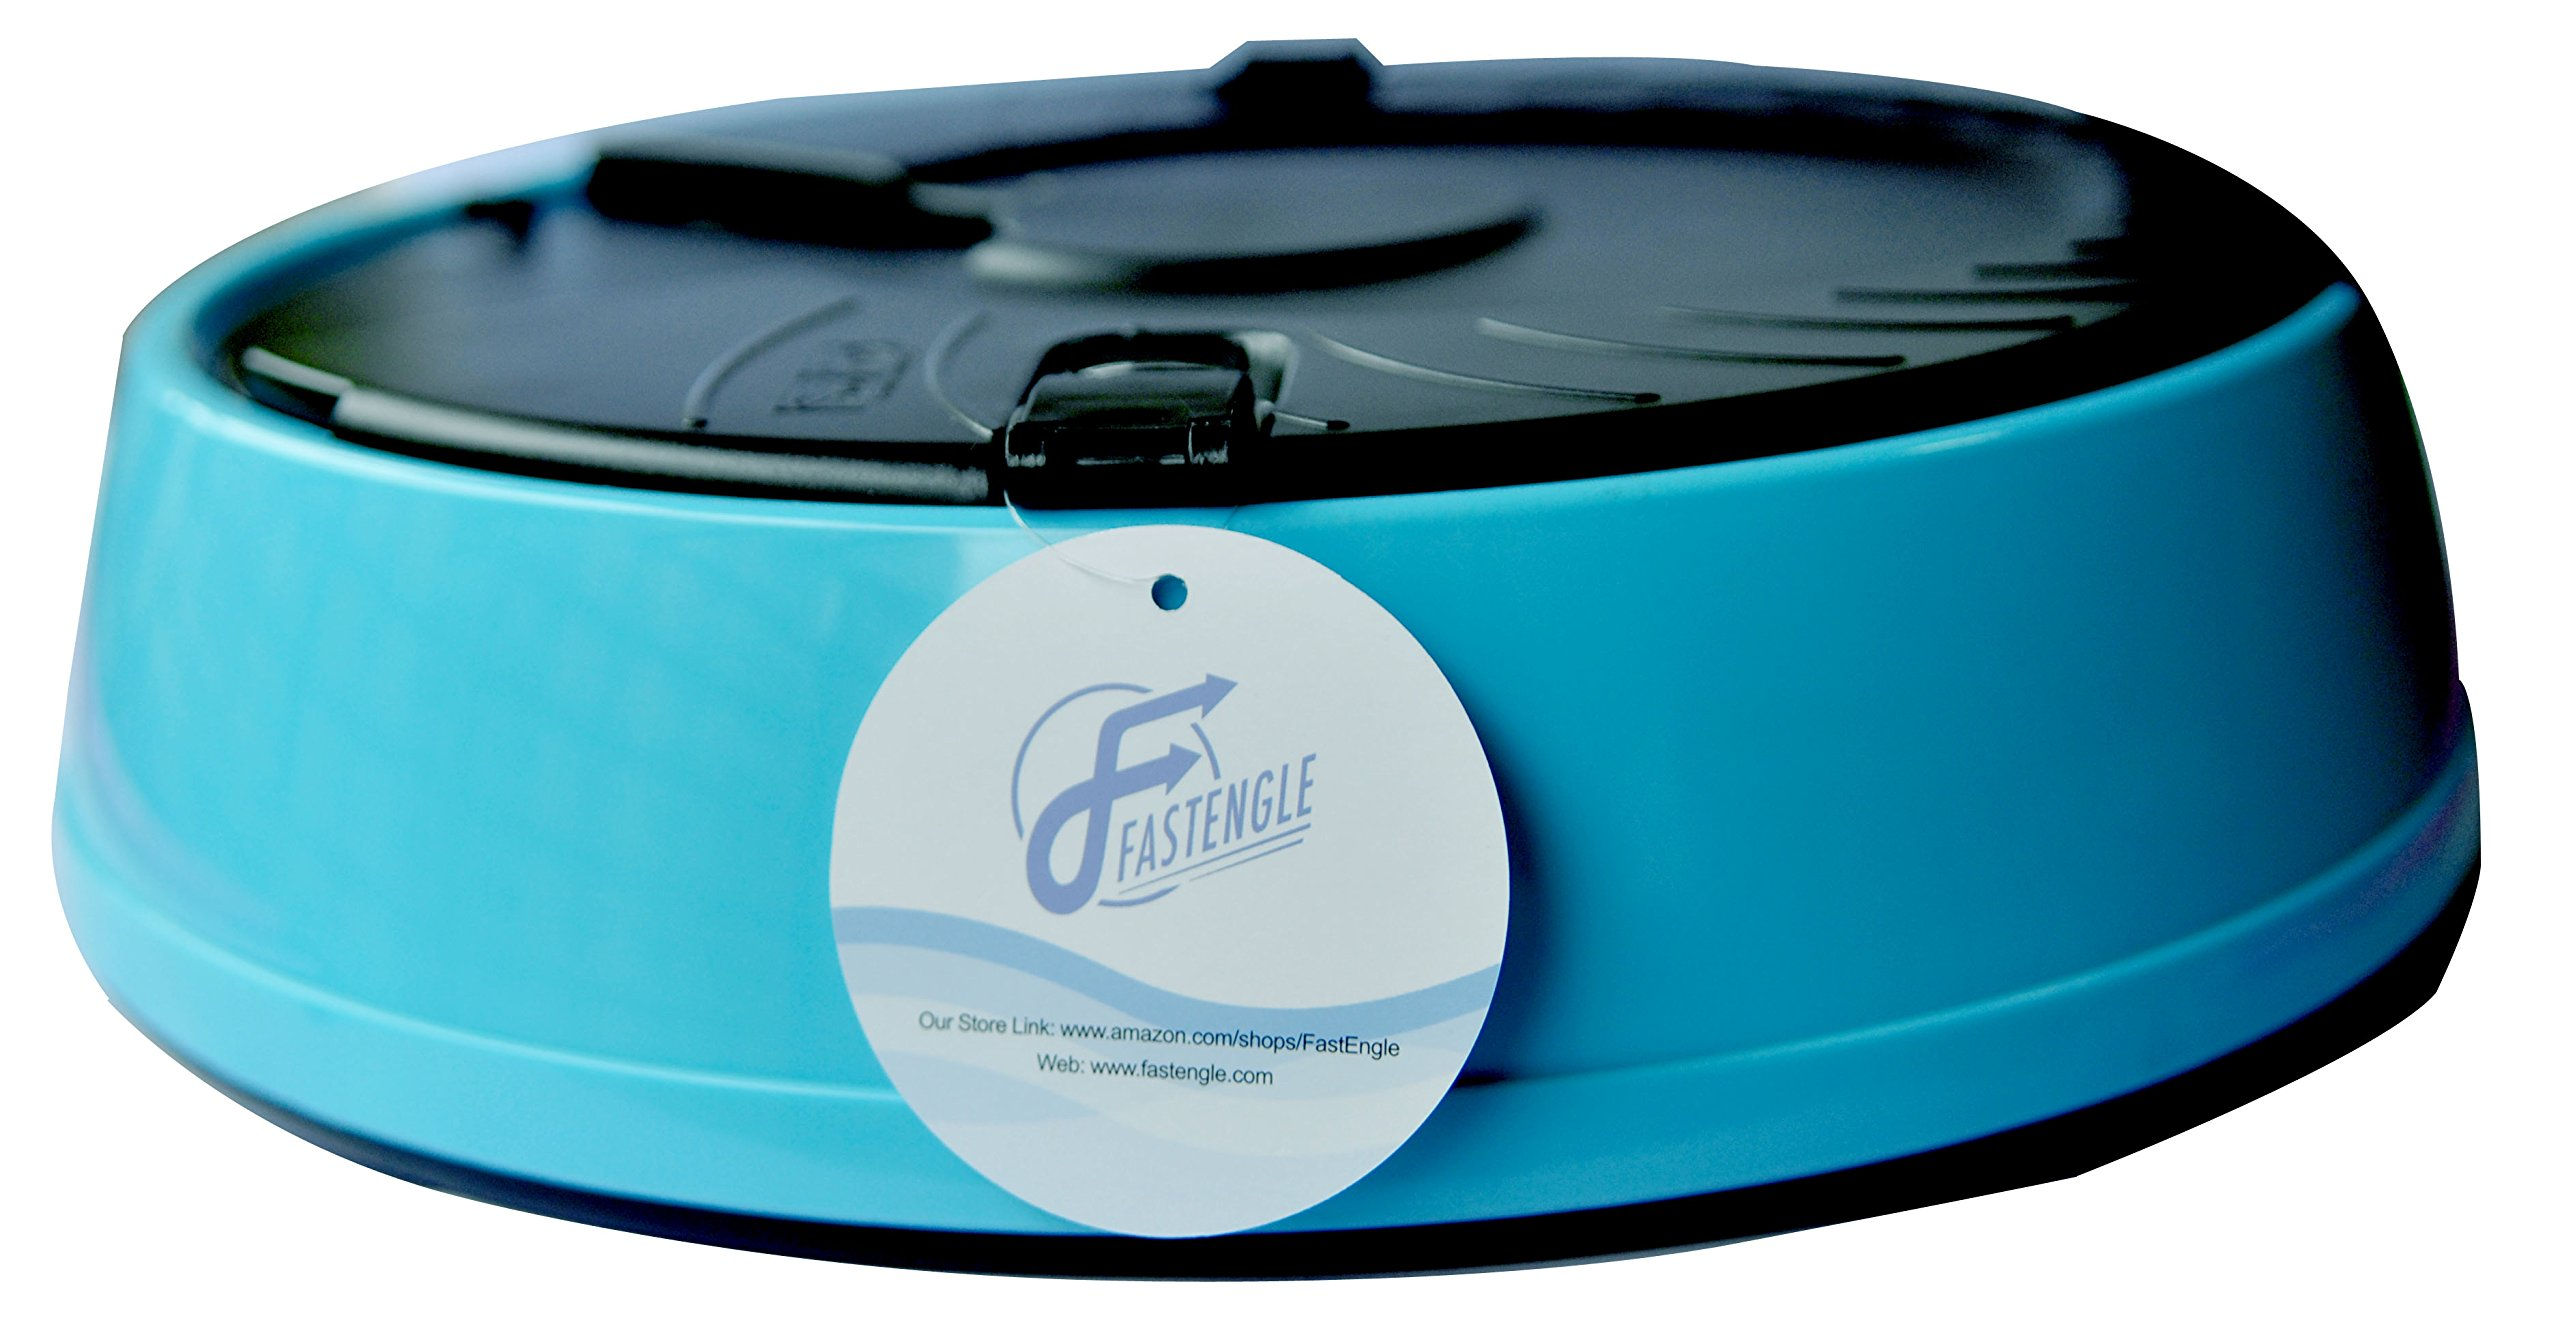 FastEngle Automatic Dog Feeder 6 Meals Programmable Timer Portion Control Pet Feeder Pet Cat Puppy Animal Food Supplies Bowls Water Trays Electronic Station Container with LCD Display (Light Blue)